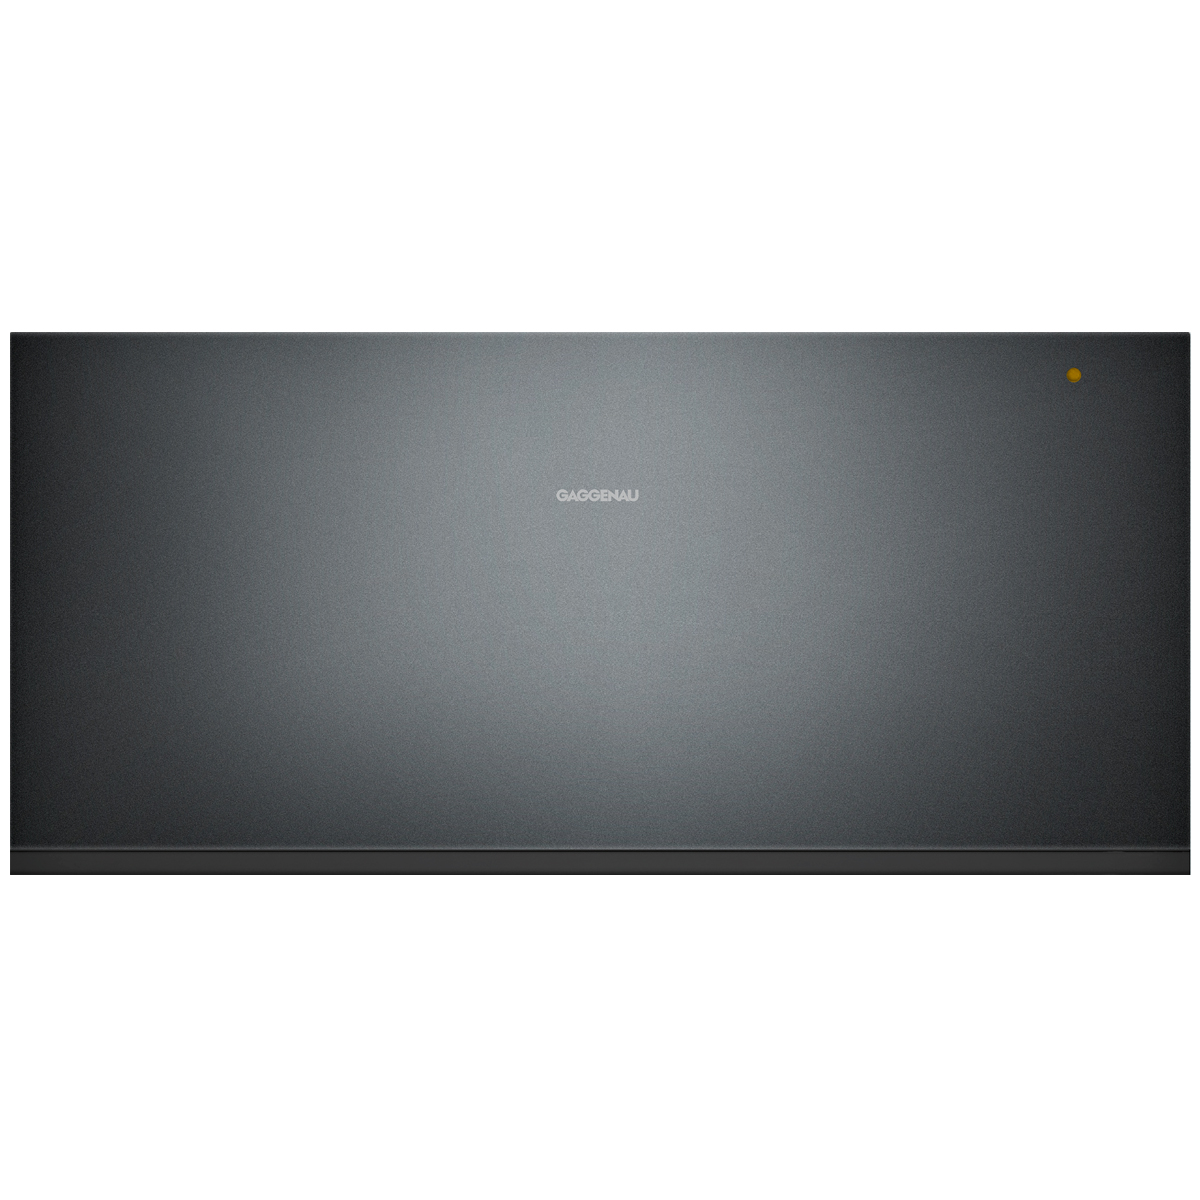 Gaggenau WSP222100 Warming Drawer 138300